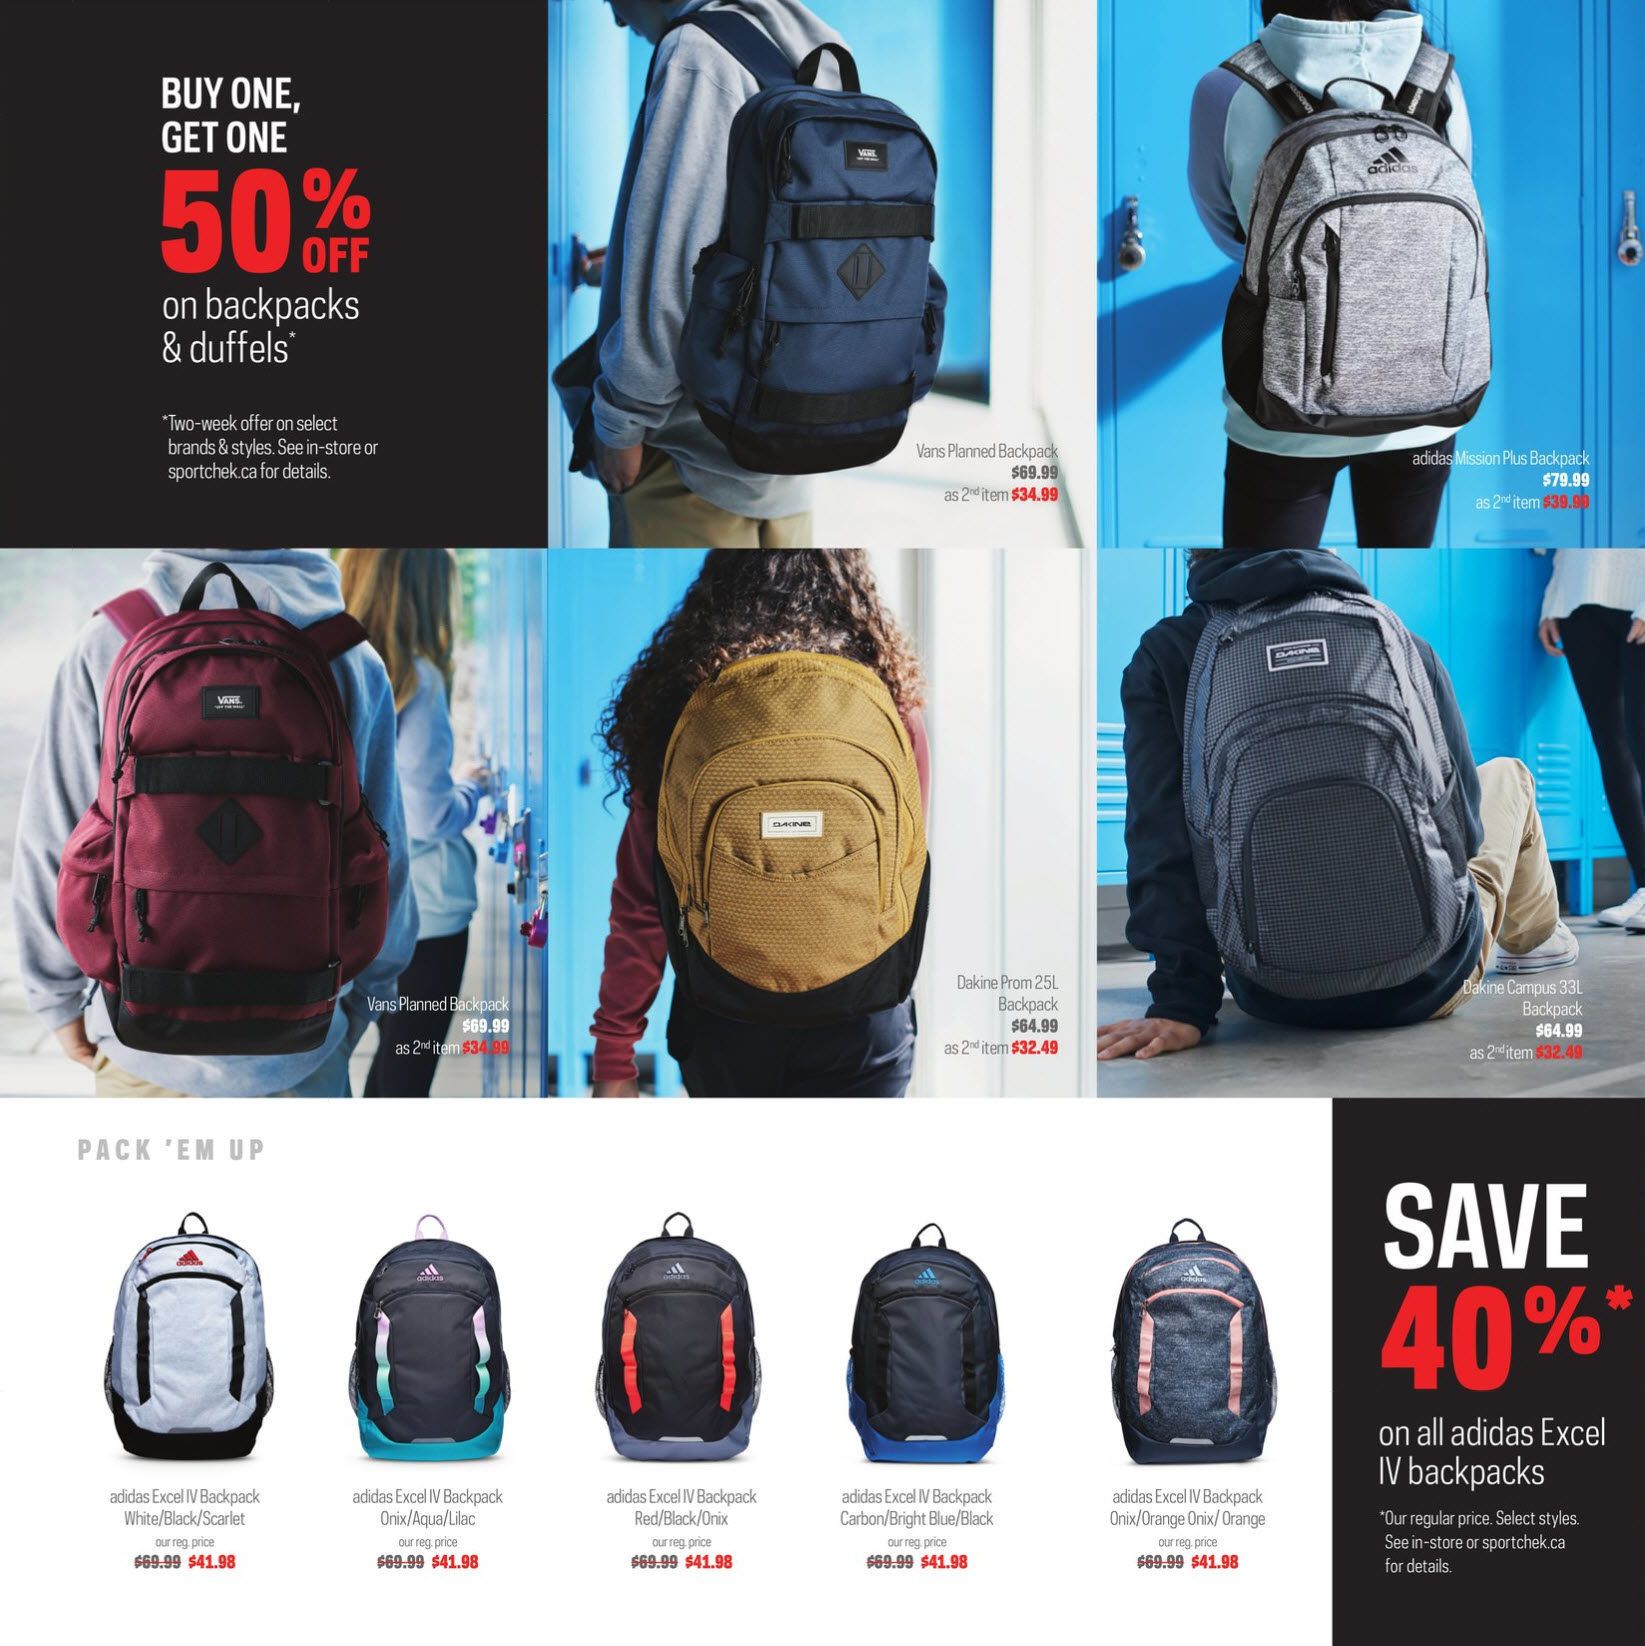 a706354307c0 Sport Chek Weekly Flyer - Move Into Fall - Aug 16 – 29 - RedFlagDeals.com